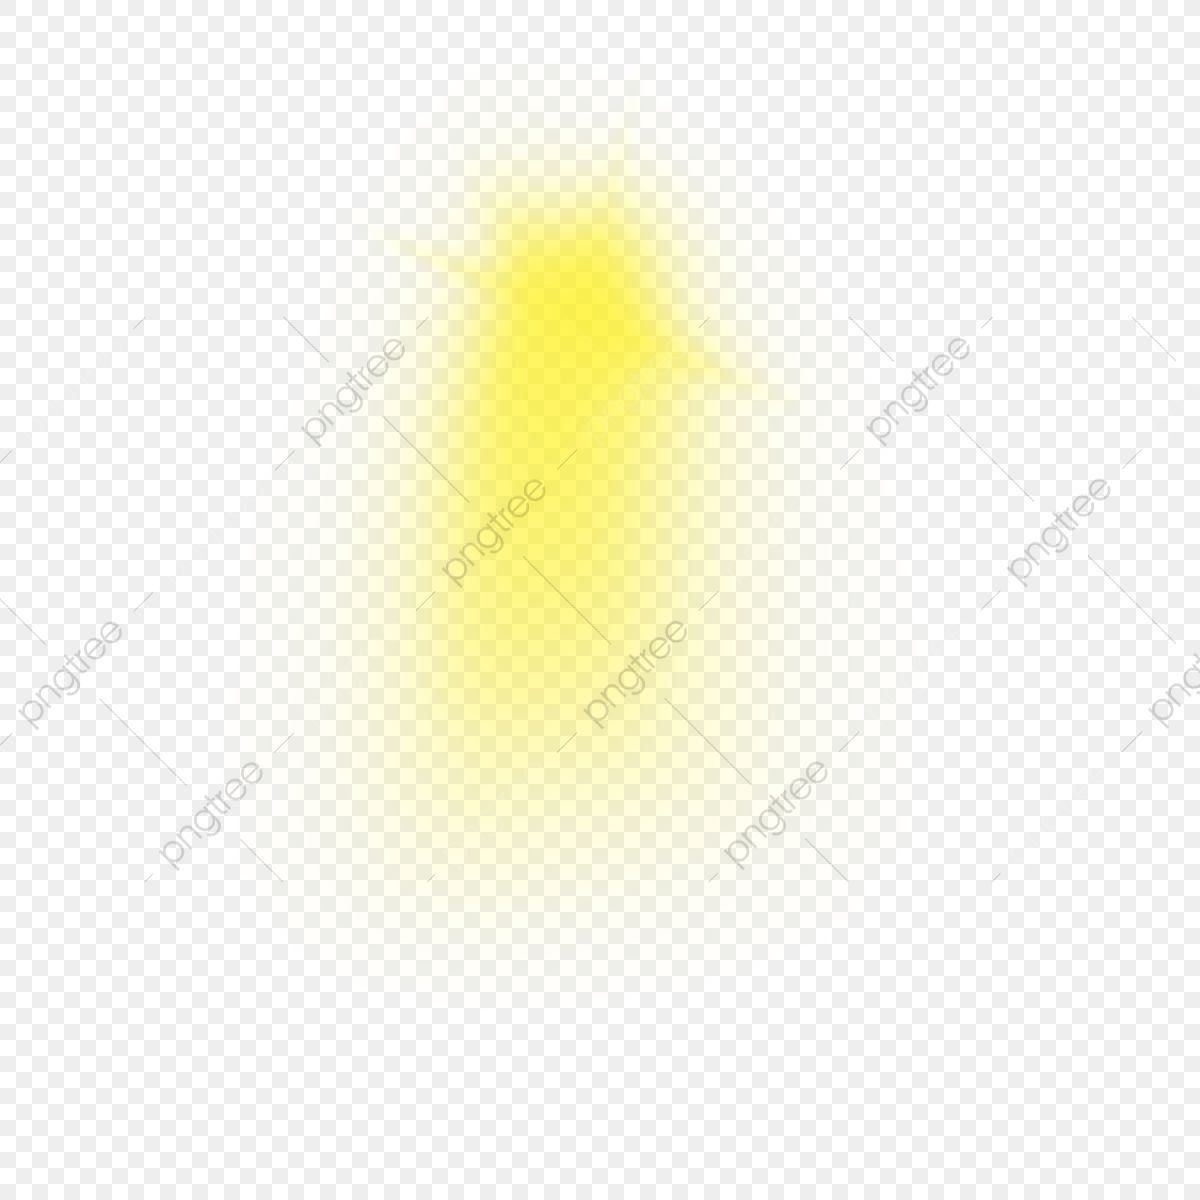 Download This Yellow Sunlight Effect Photoshop Light Png For Picsart Light Png Photoshop Png Light Hd Png Clipa Photoshop Photoshop Icons Photoshop Lighting